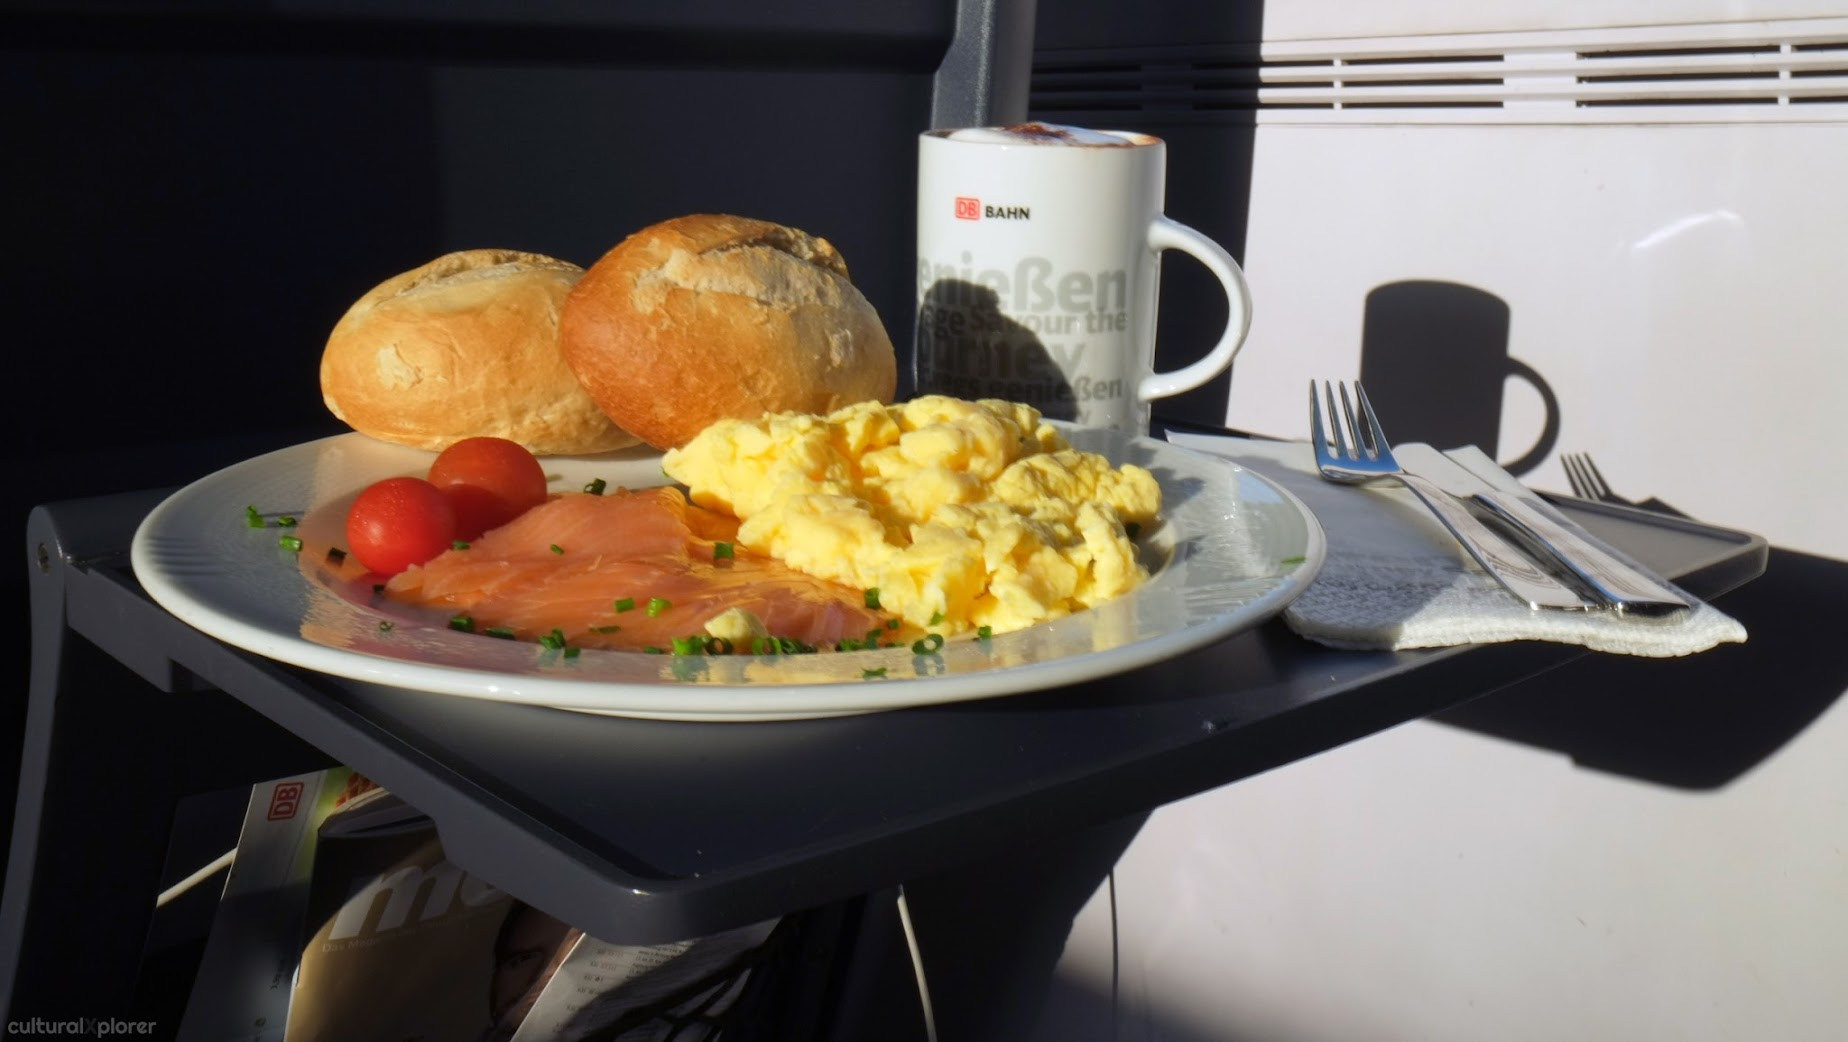 breakfast DB Bahn Germany